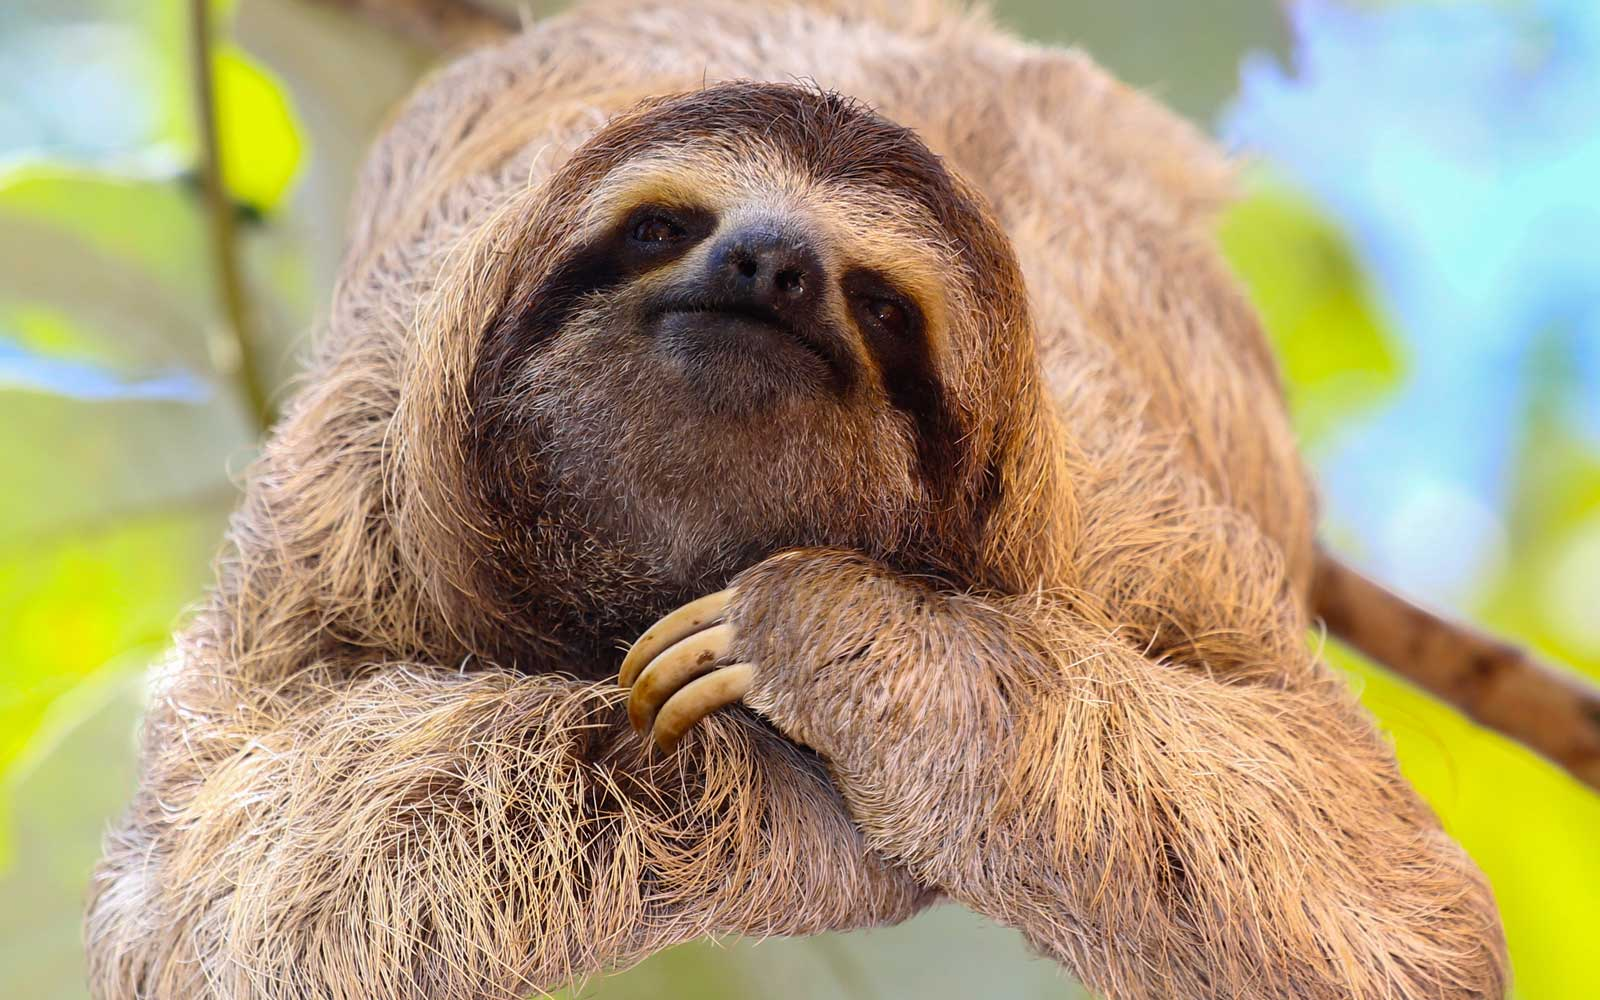 Where to Hang With Sloths on International Sloth Day